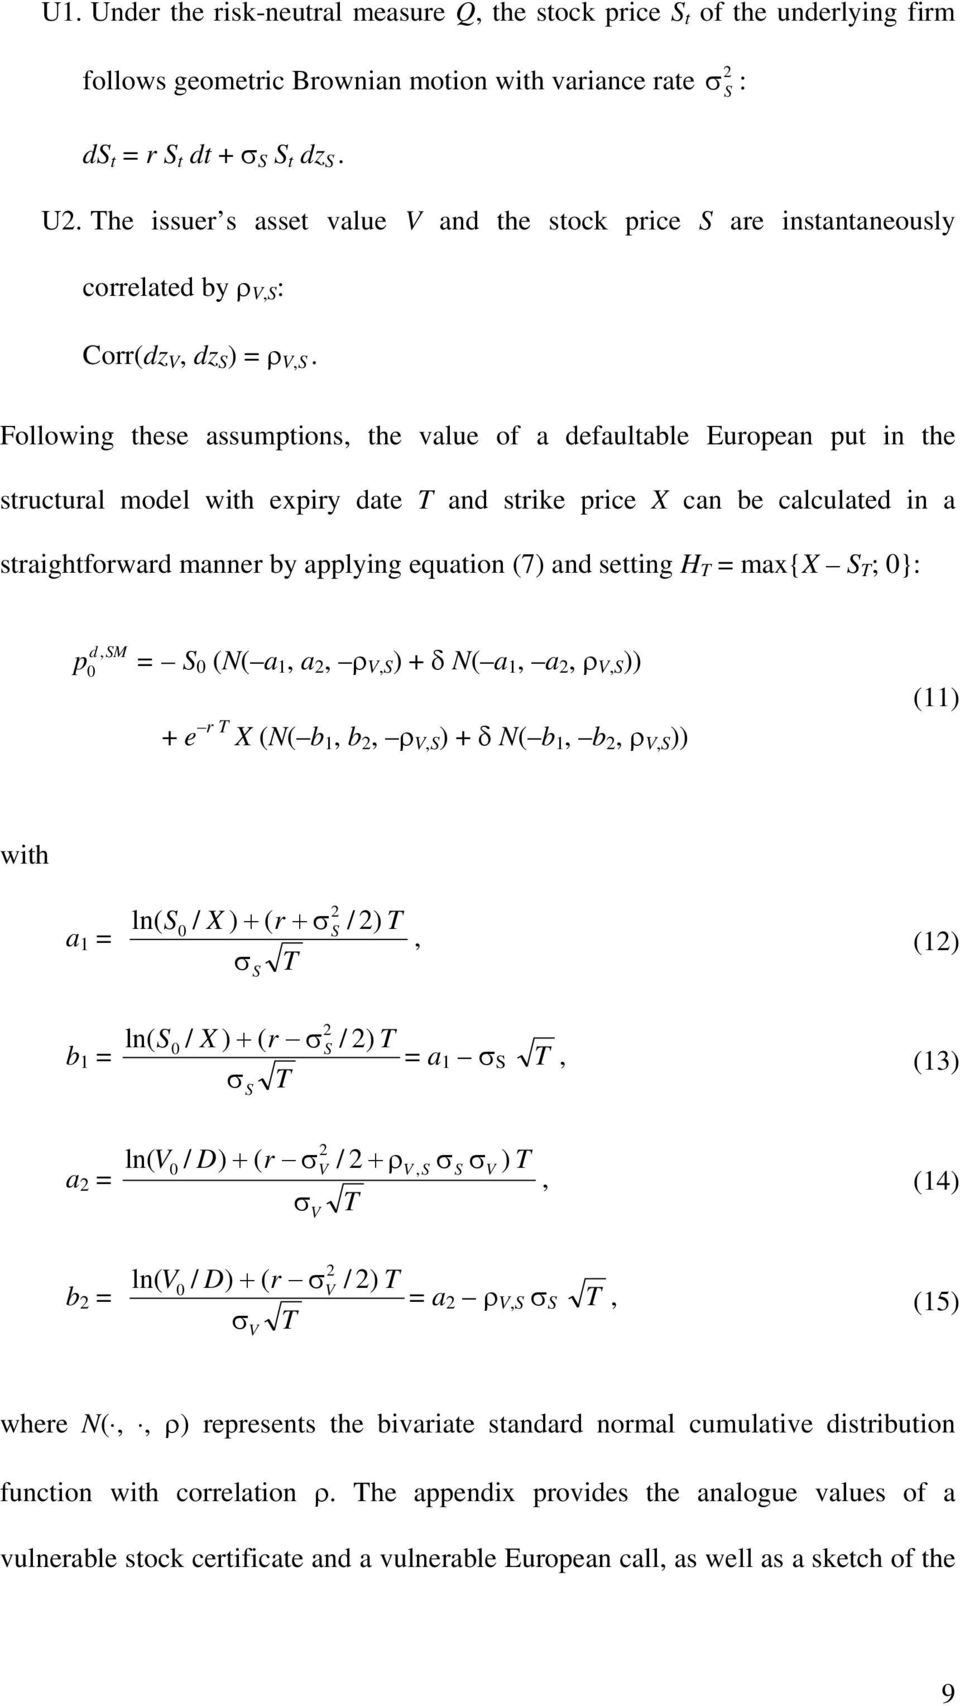 Following these assumptions, the value of a defaultable European put in the structural model with expiry date T and strike price X can be calculated in a straightforward manner by applying equation